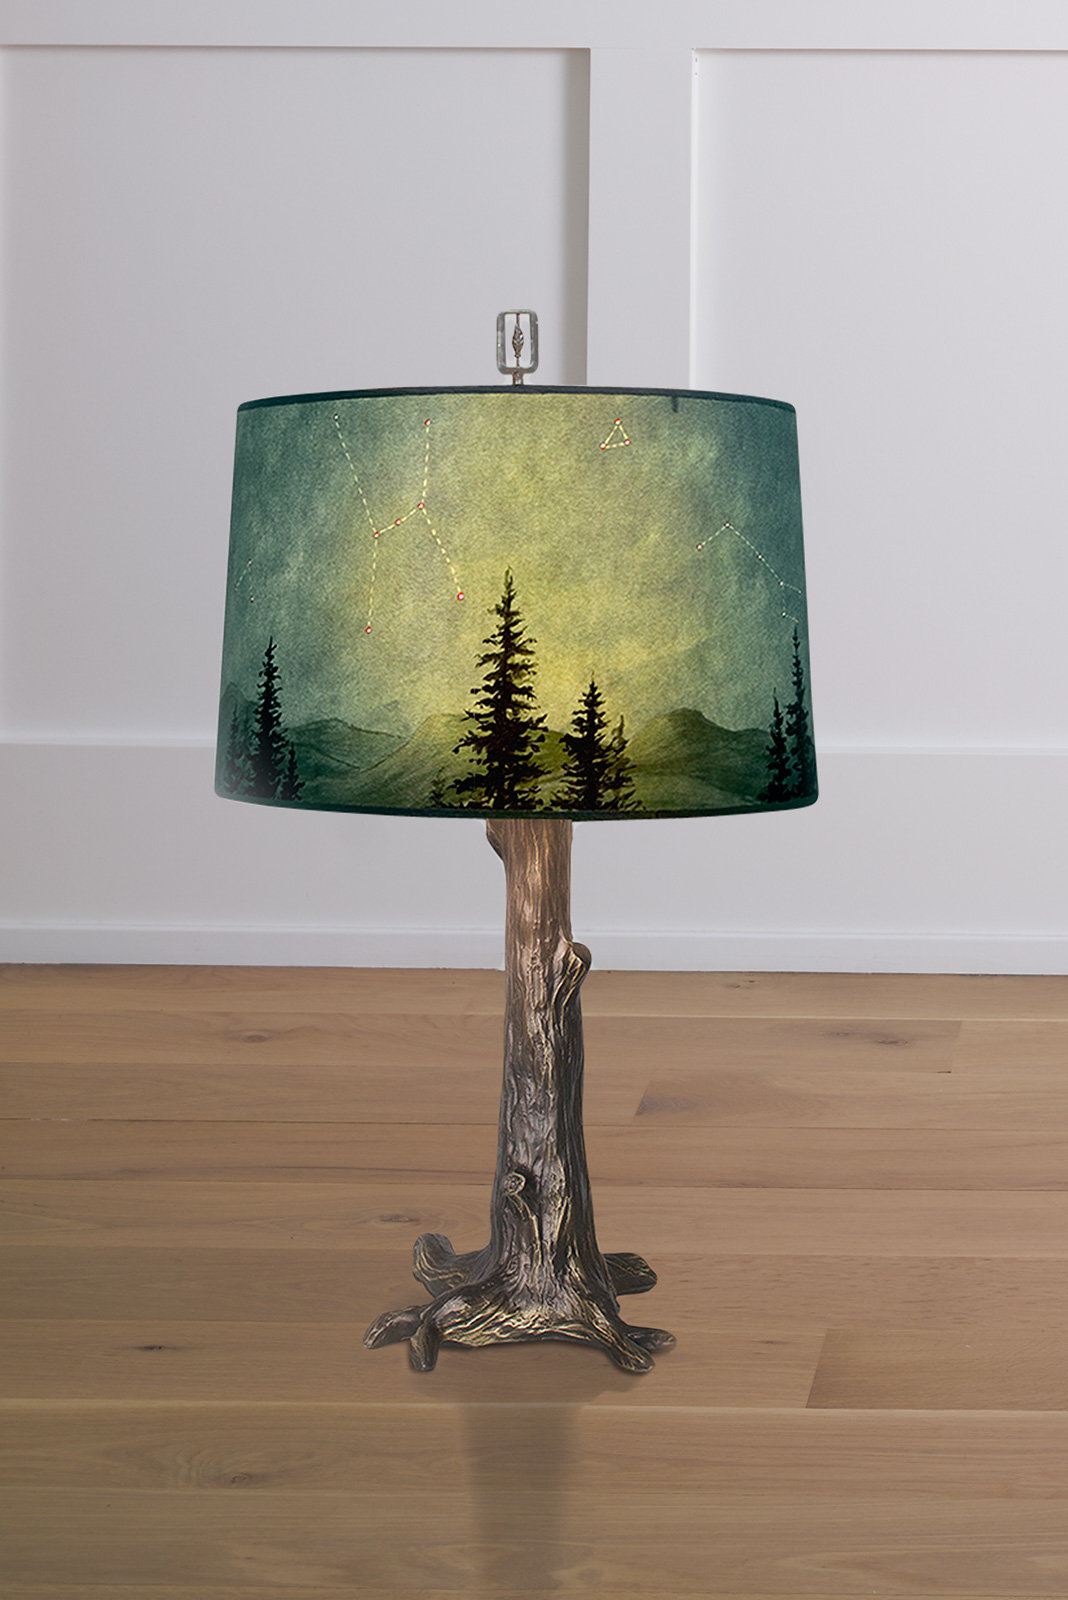 Bronze Tree Table Lamp With Large Drum Shade In Midnight